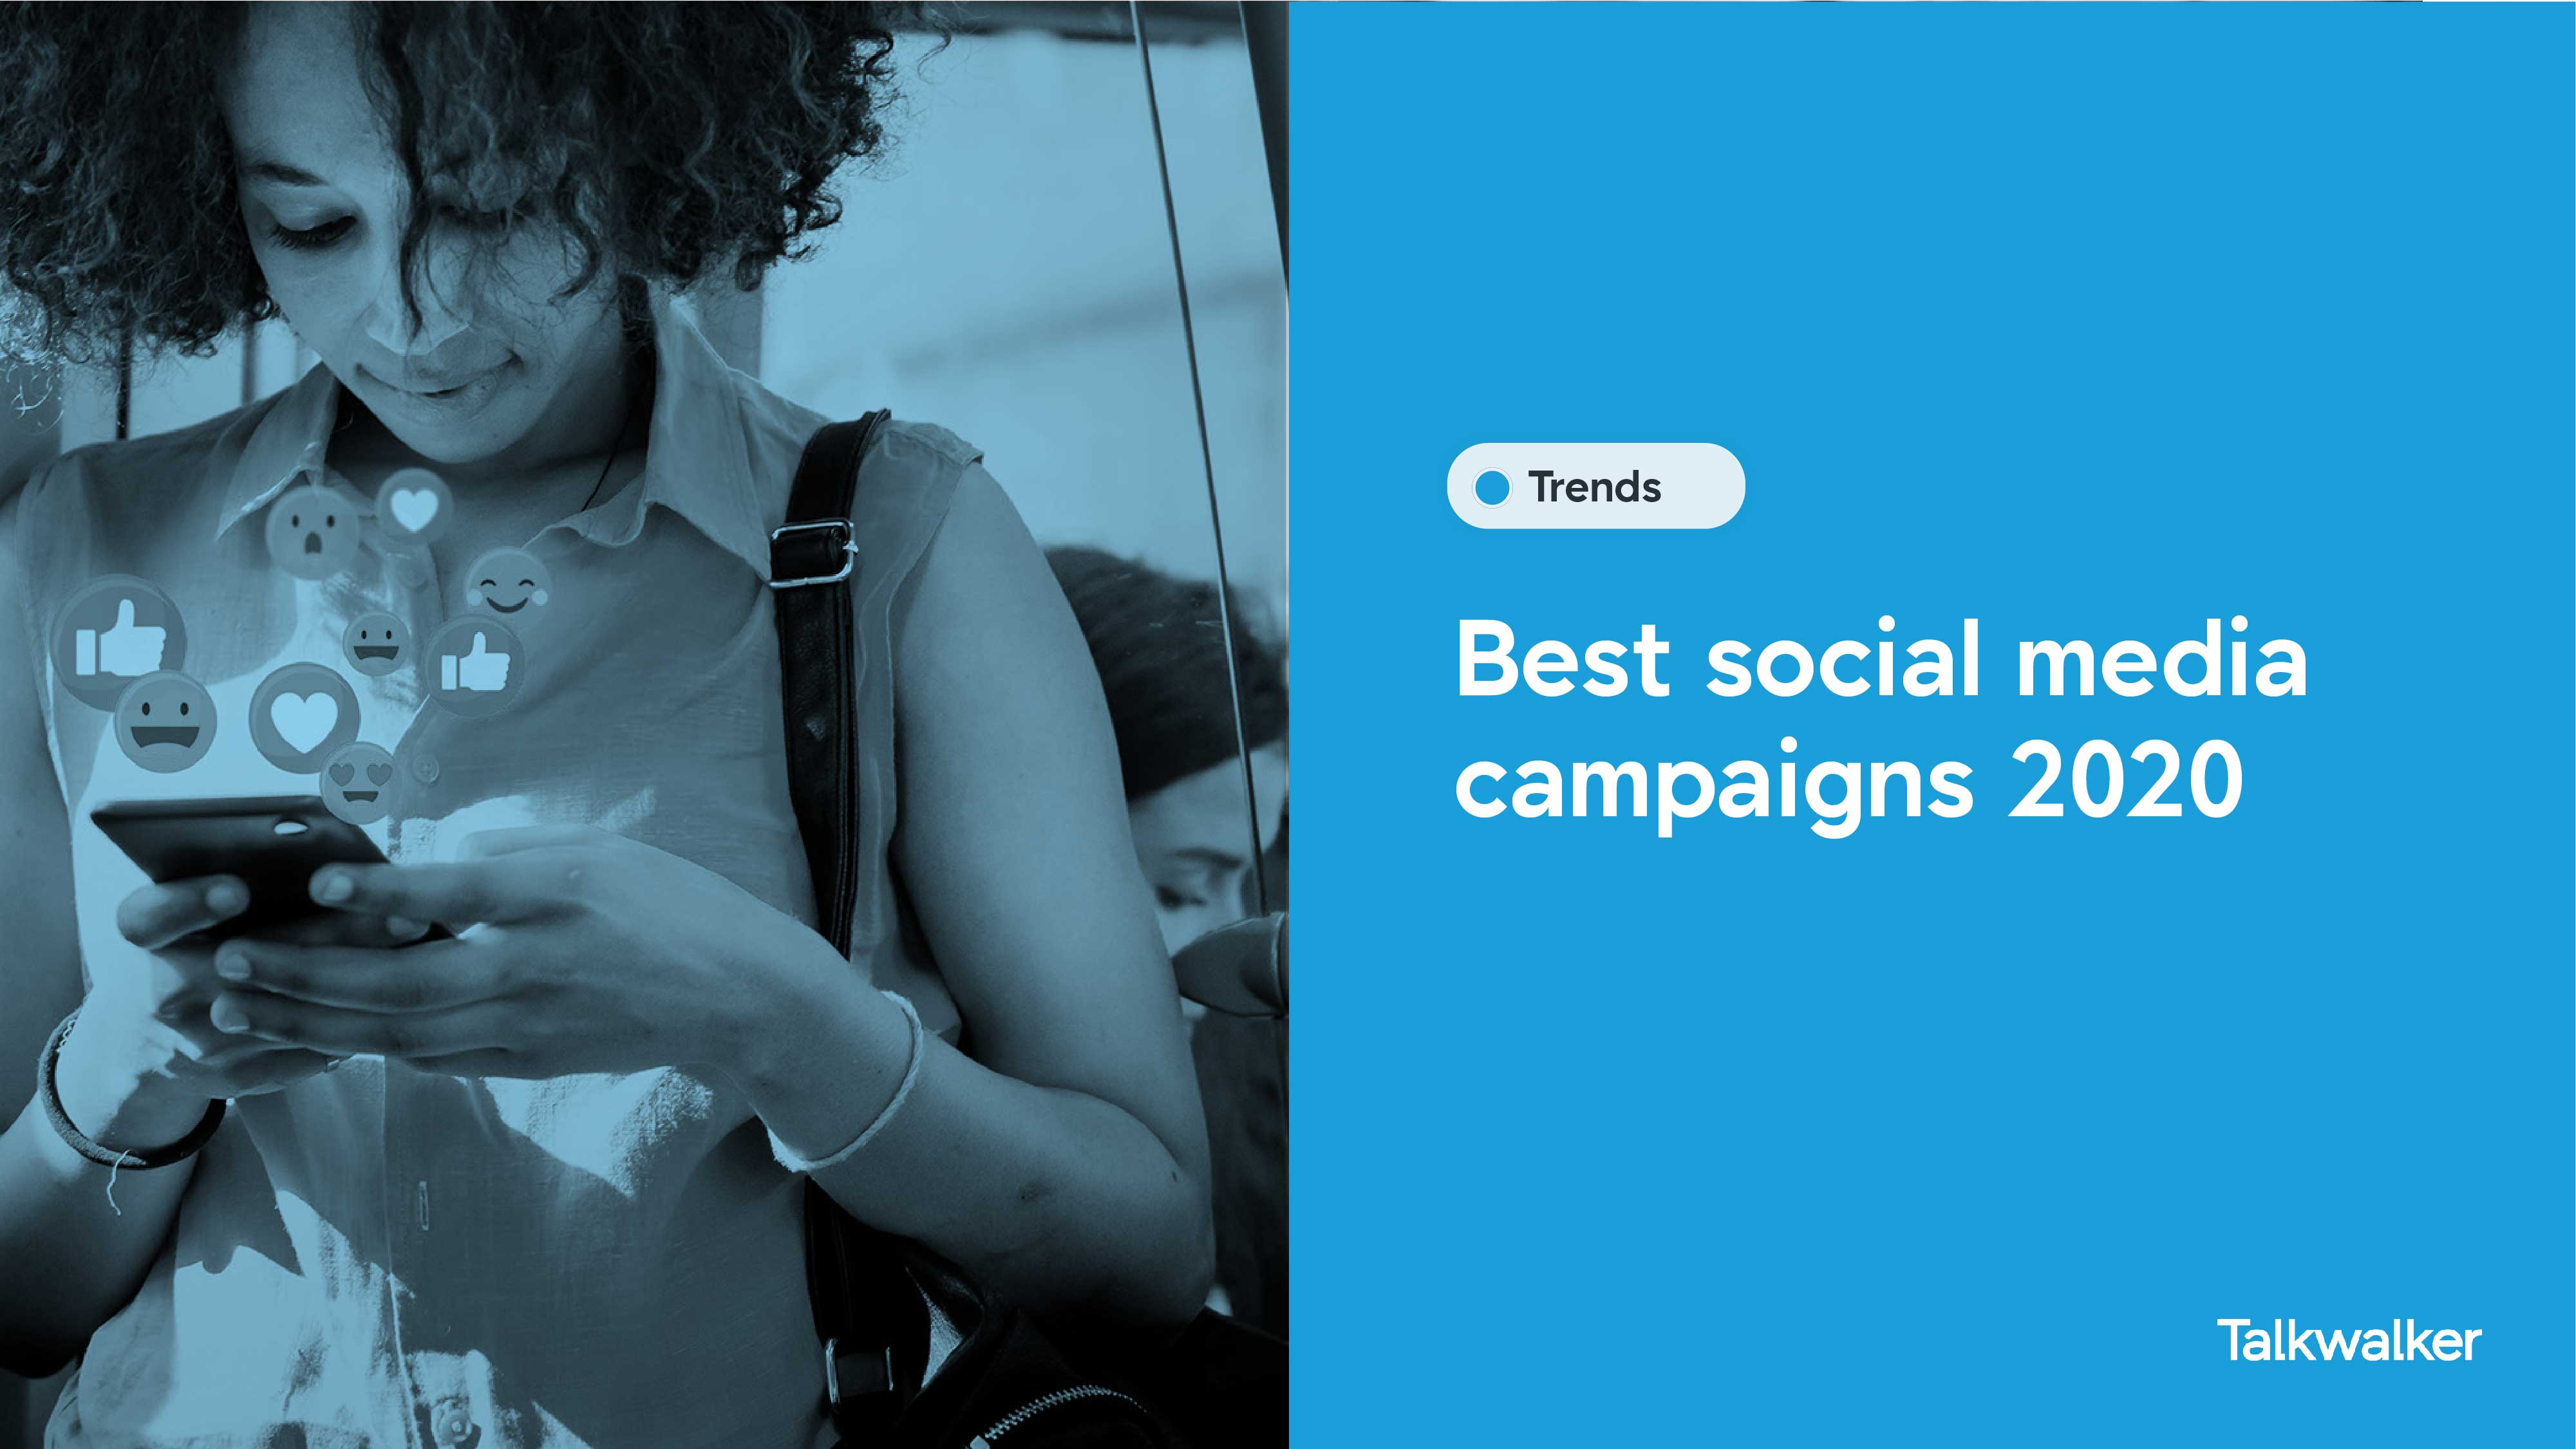 Best social media campaigns 2020